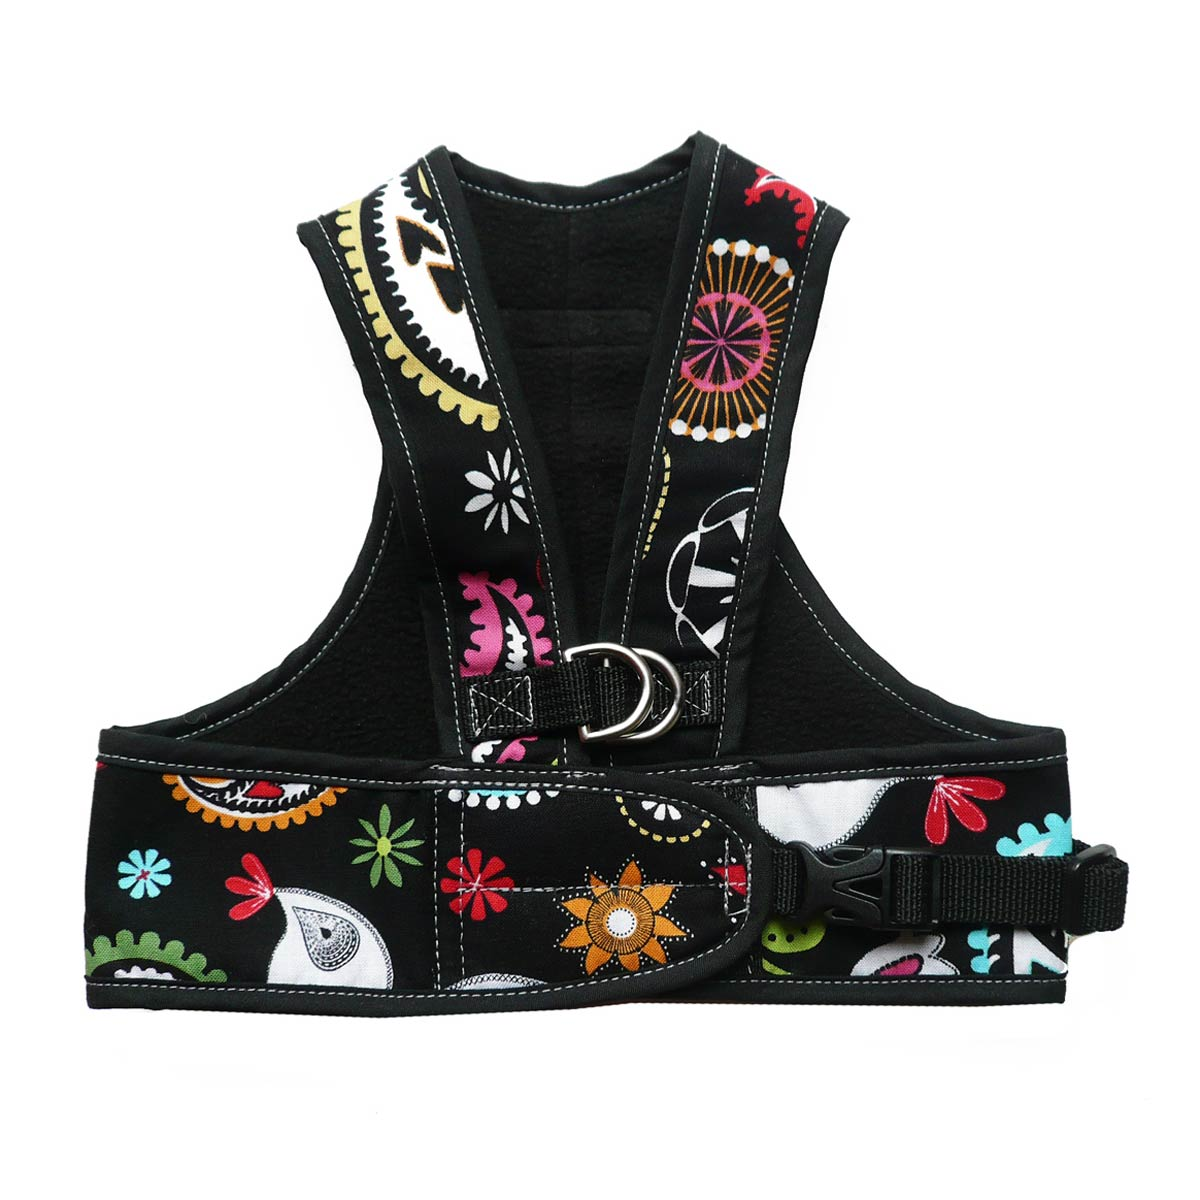 Step Easy Adjustable Dog Harness - Paisley and Black